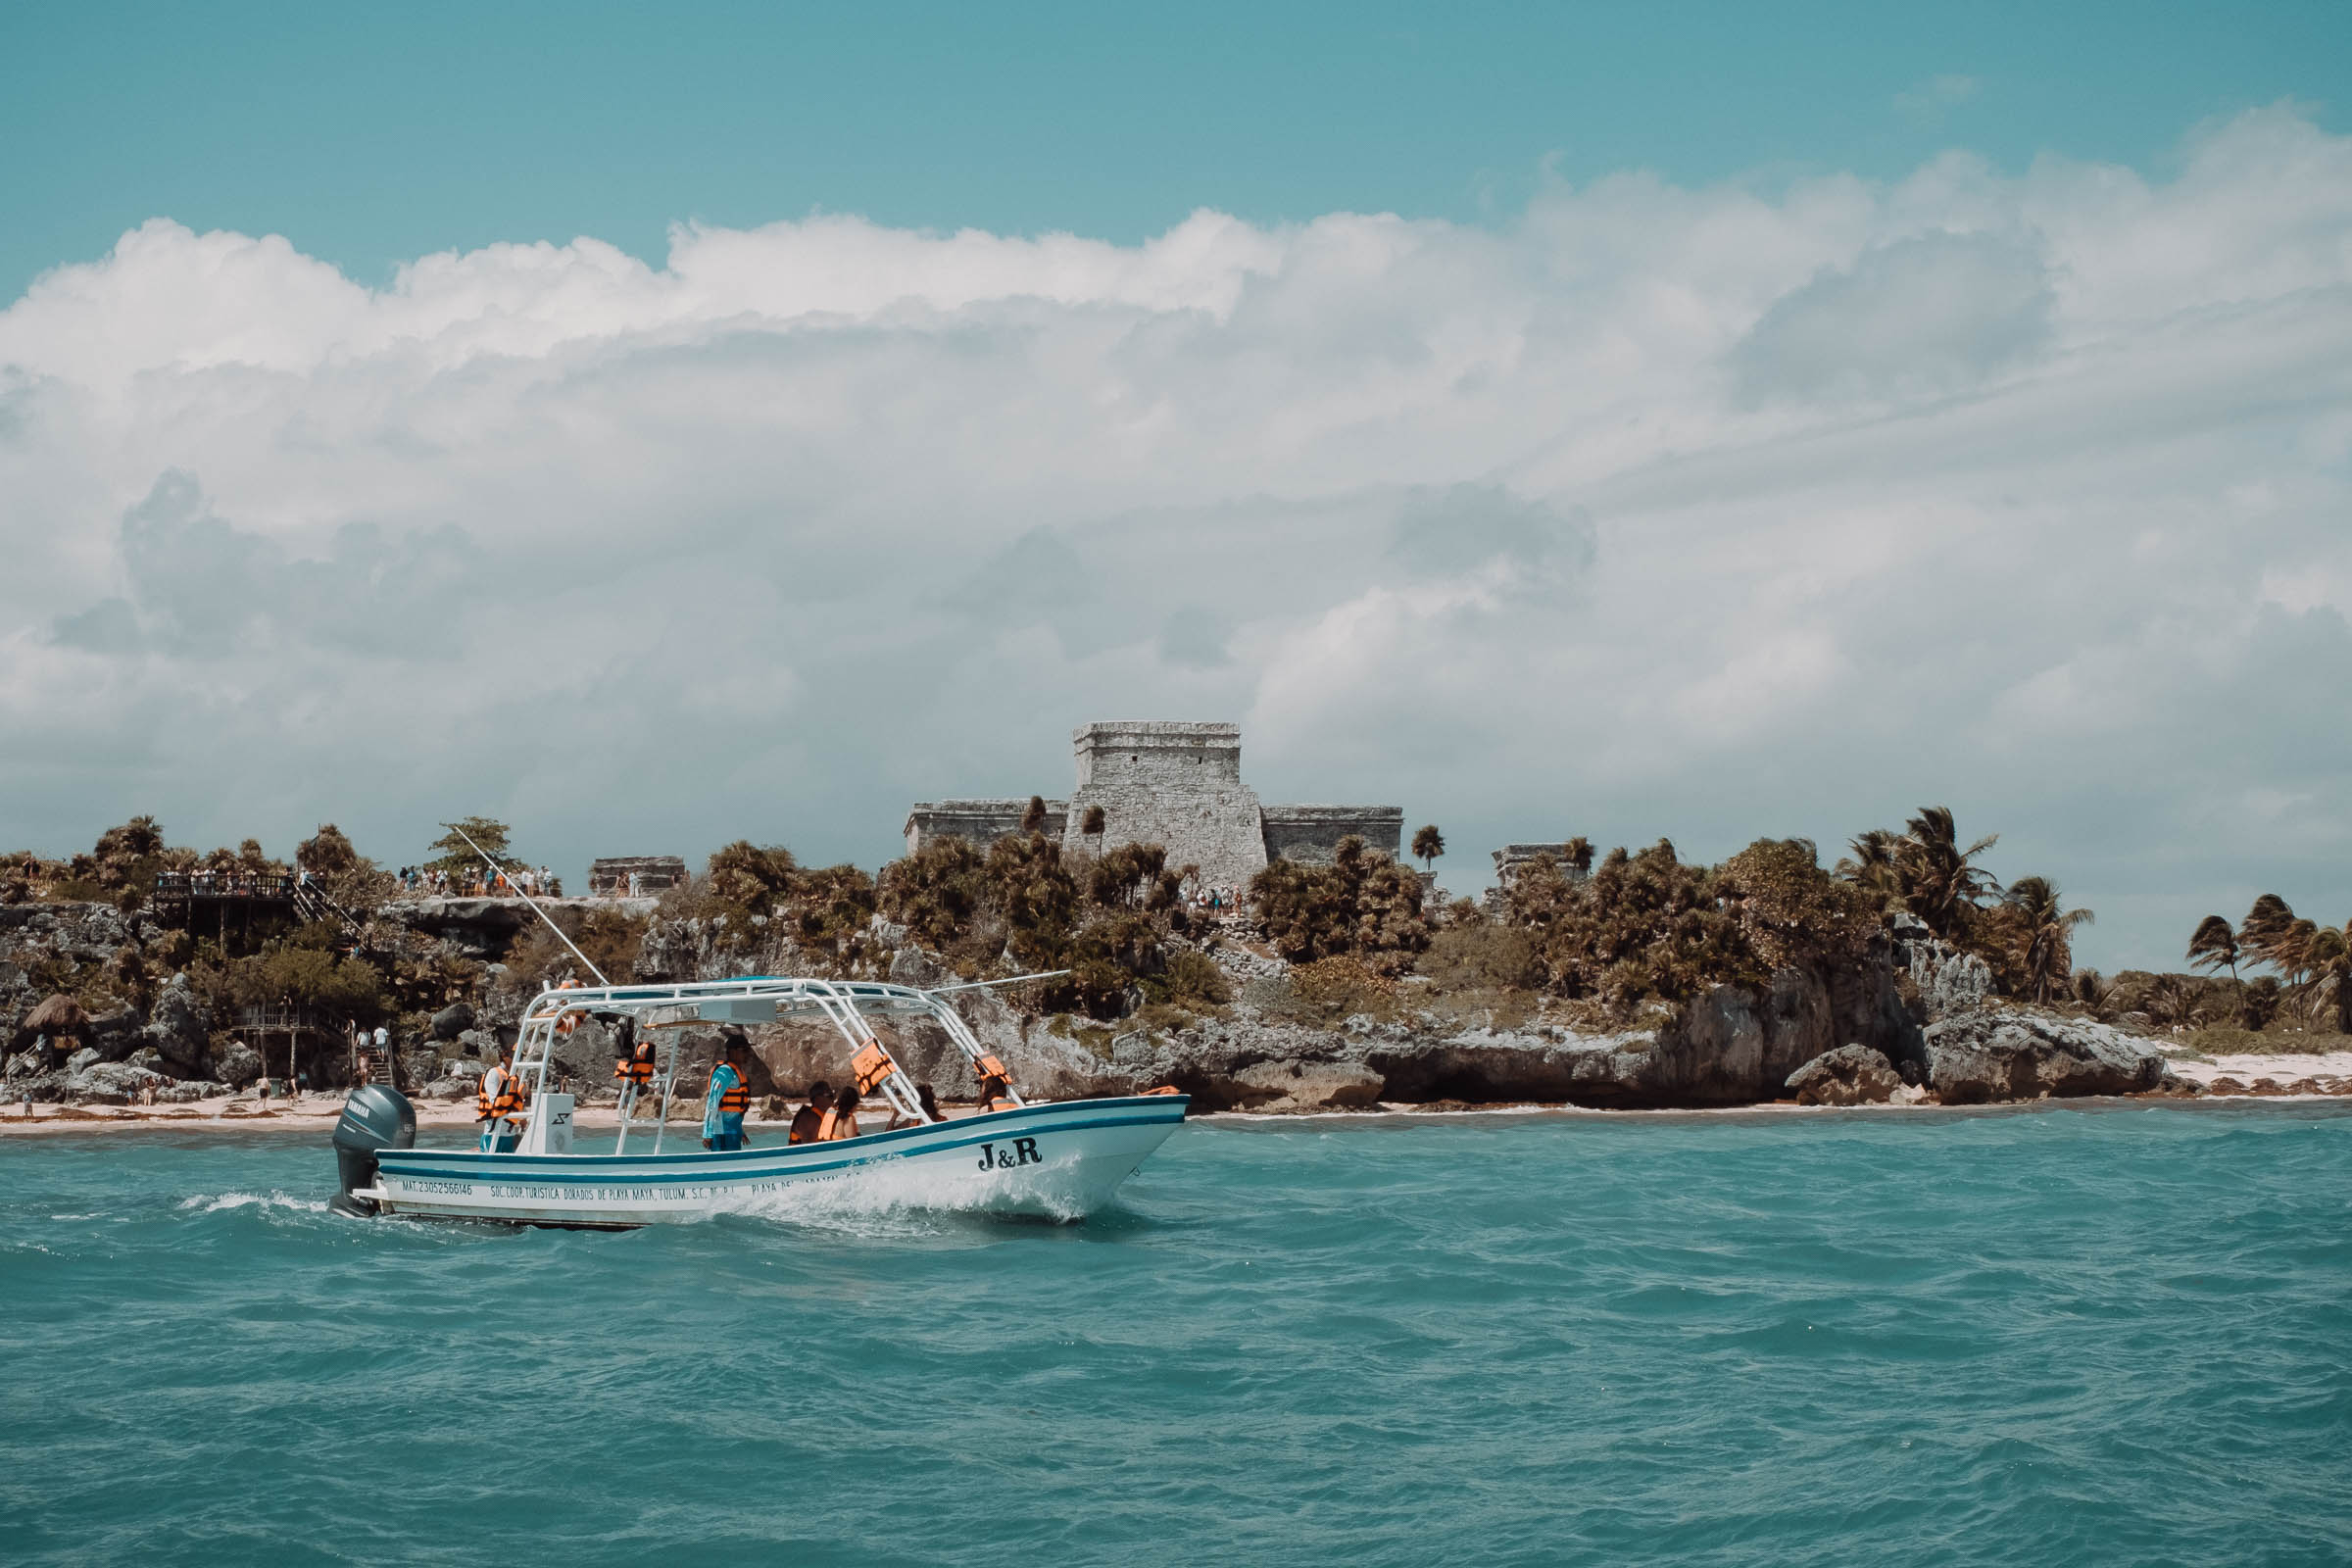 Chacon Images_Mexico2019_Web-39.jpg